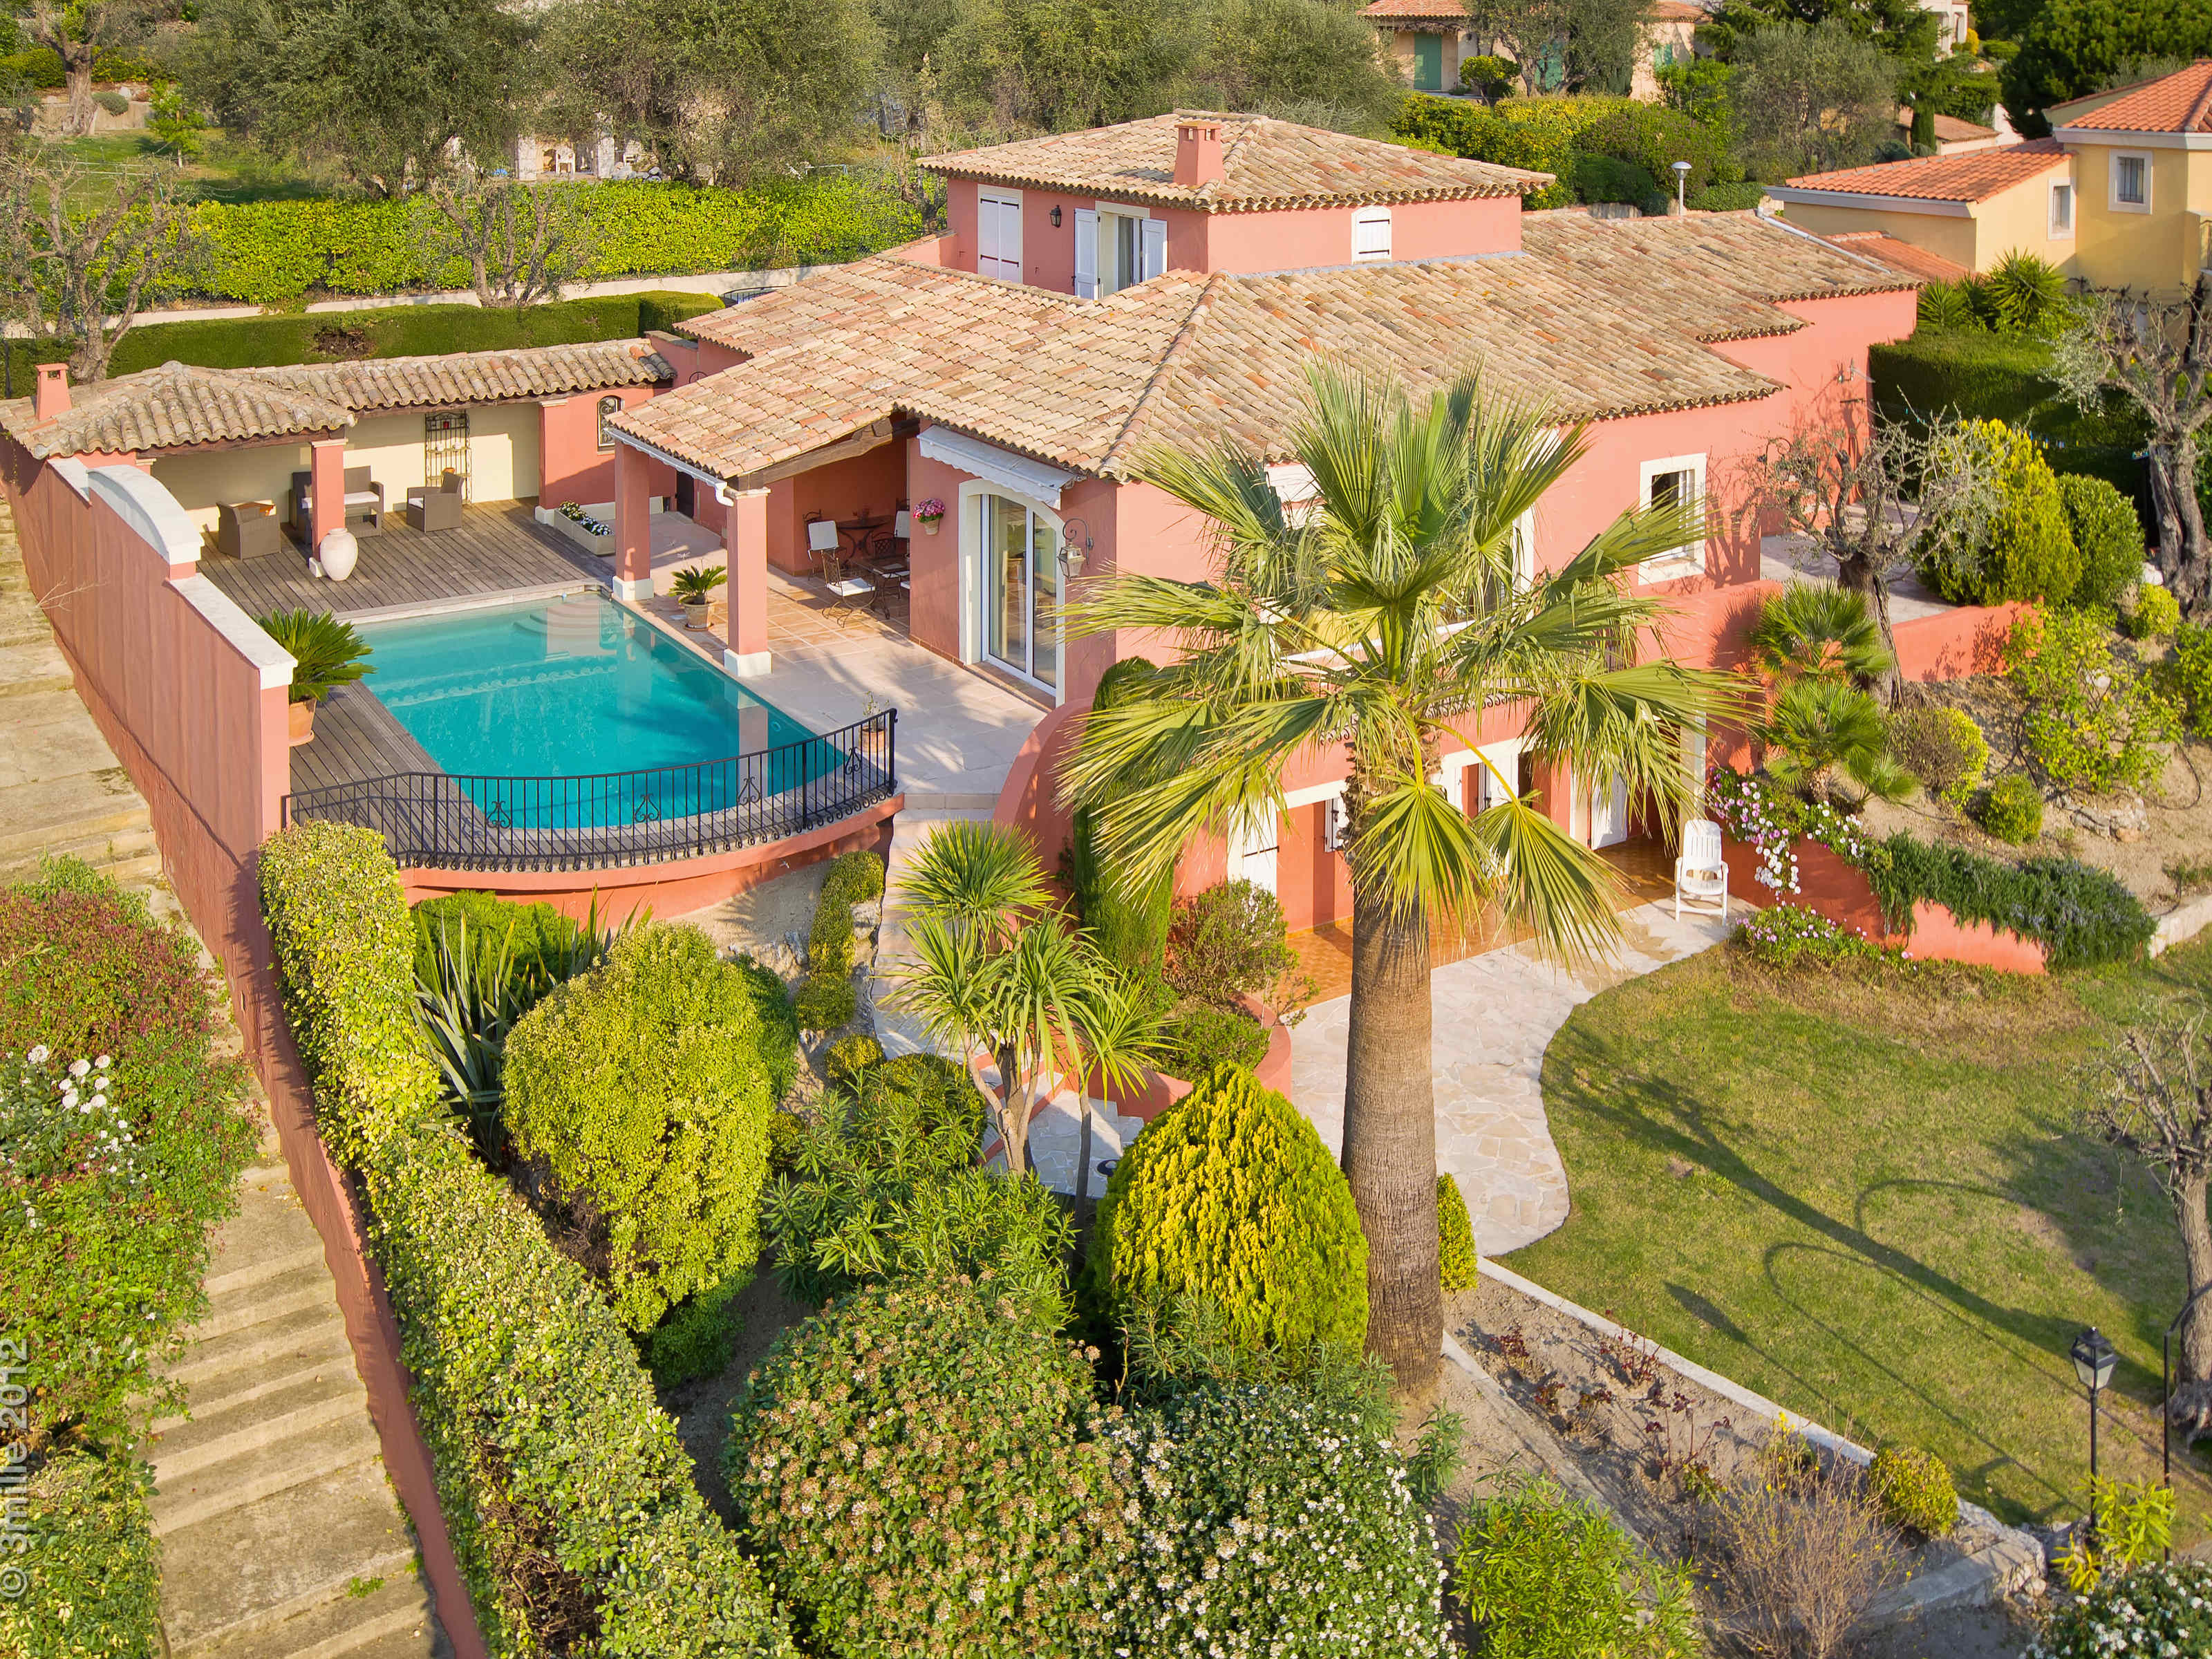 Single Family Home for Sale at Sole Agent - Provencal House Nice, Provence-Alpes-Cote D'Azur 06100 France